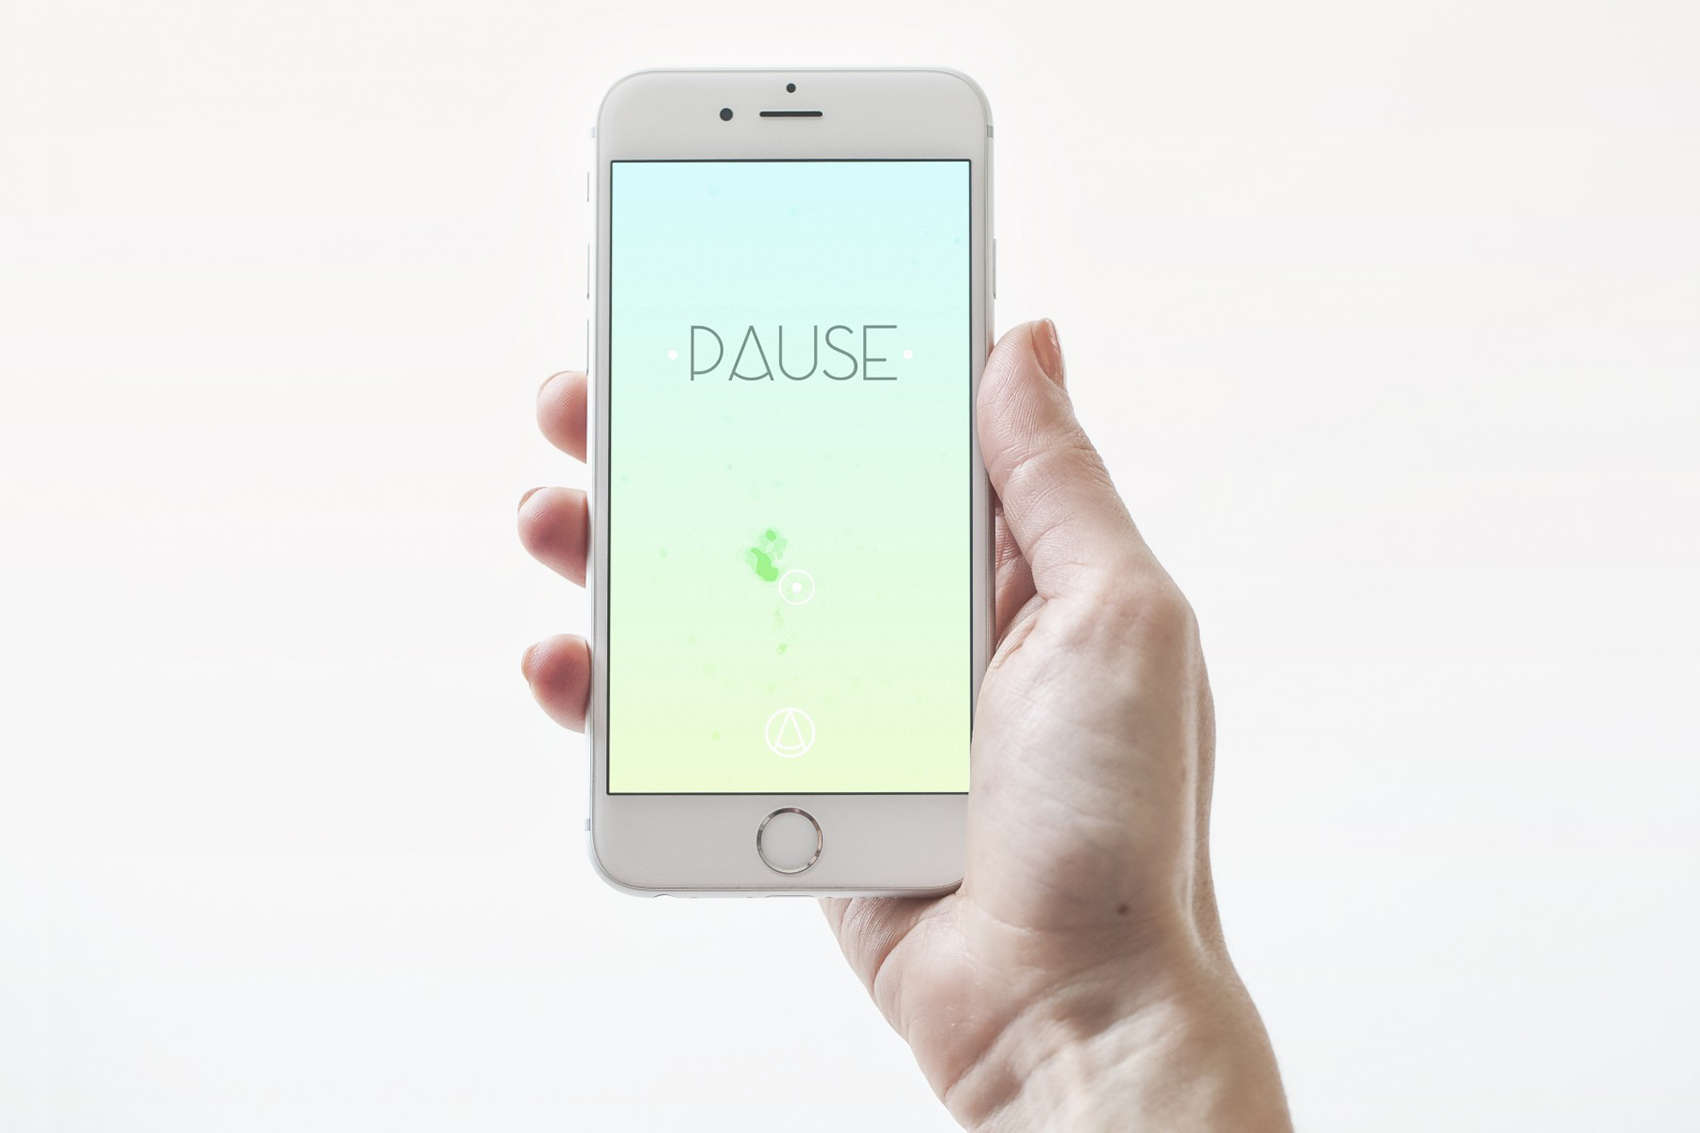 PAUSE is a guided meditation app that aims to get you to relax and refocus.